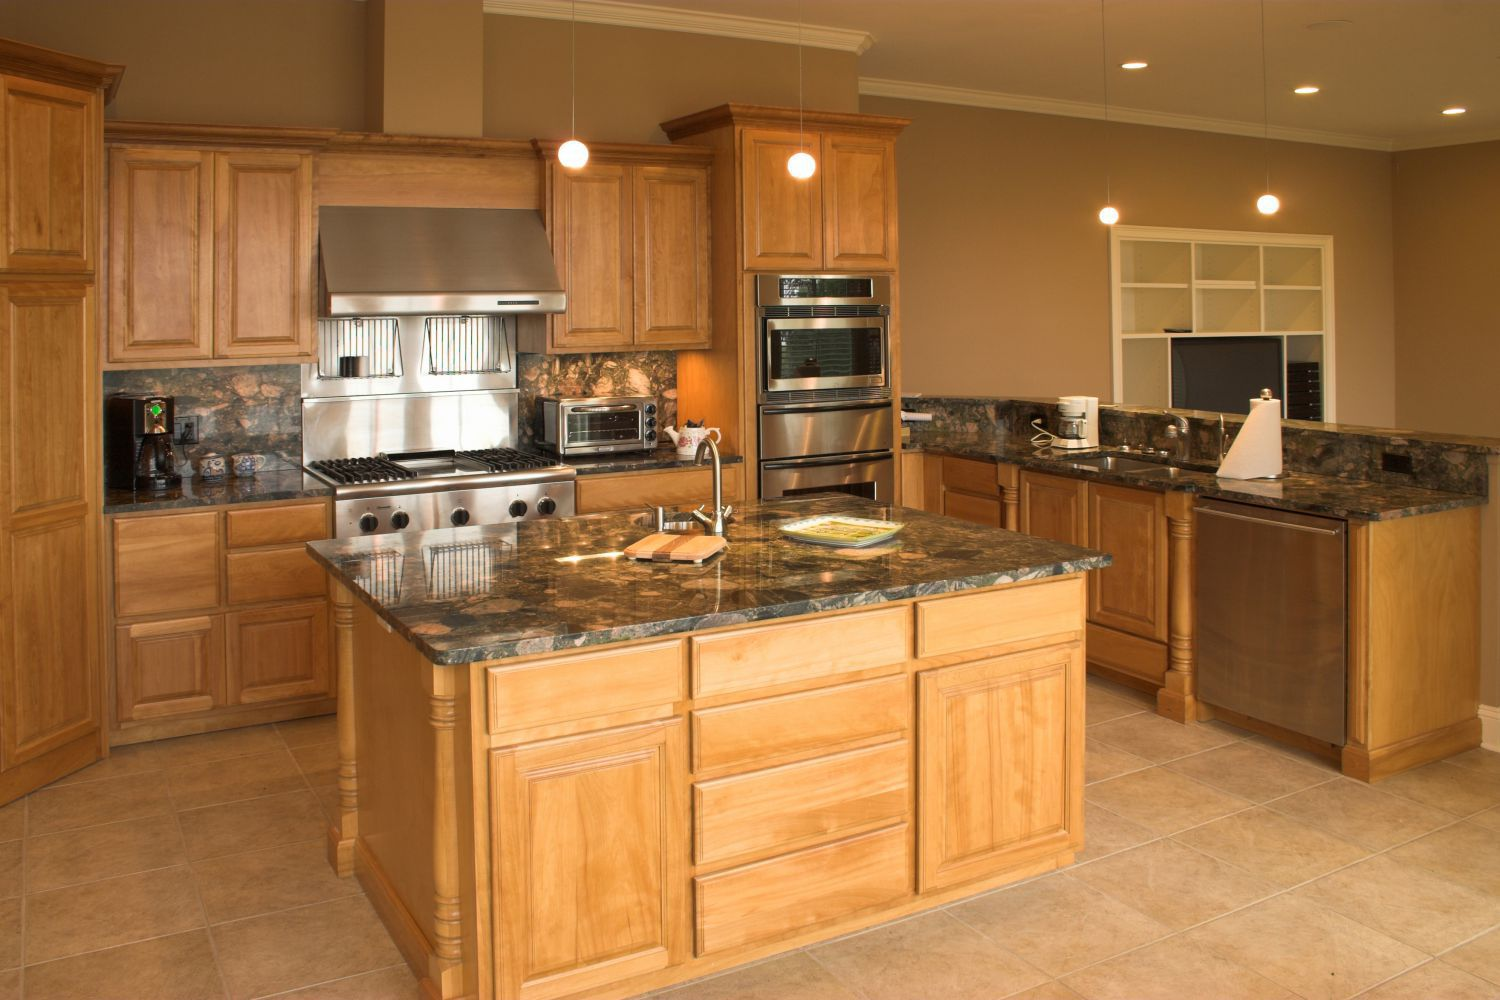 Kitchen cabinet supplies in cincinnati oh huber lumber co for Cincinnati kitchen cabinets